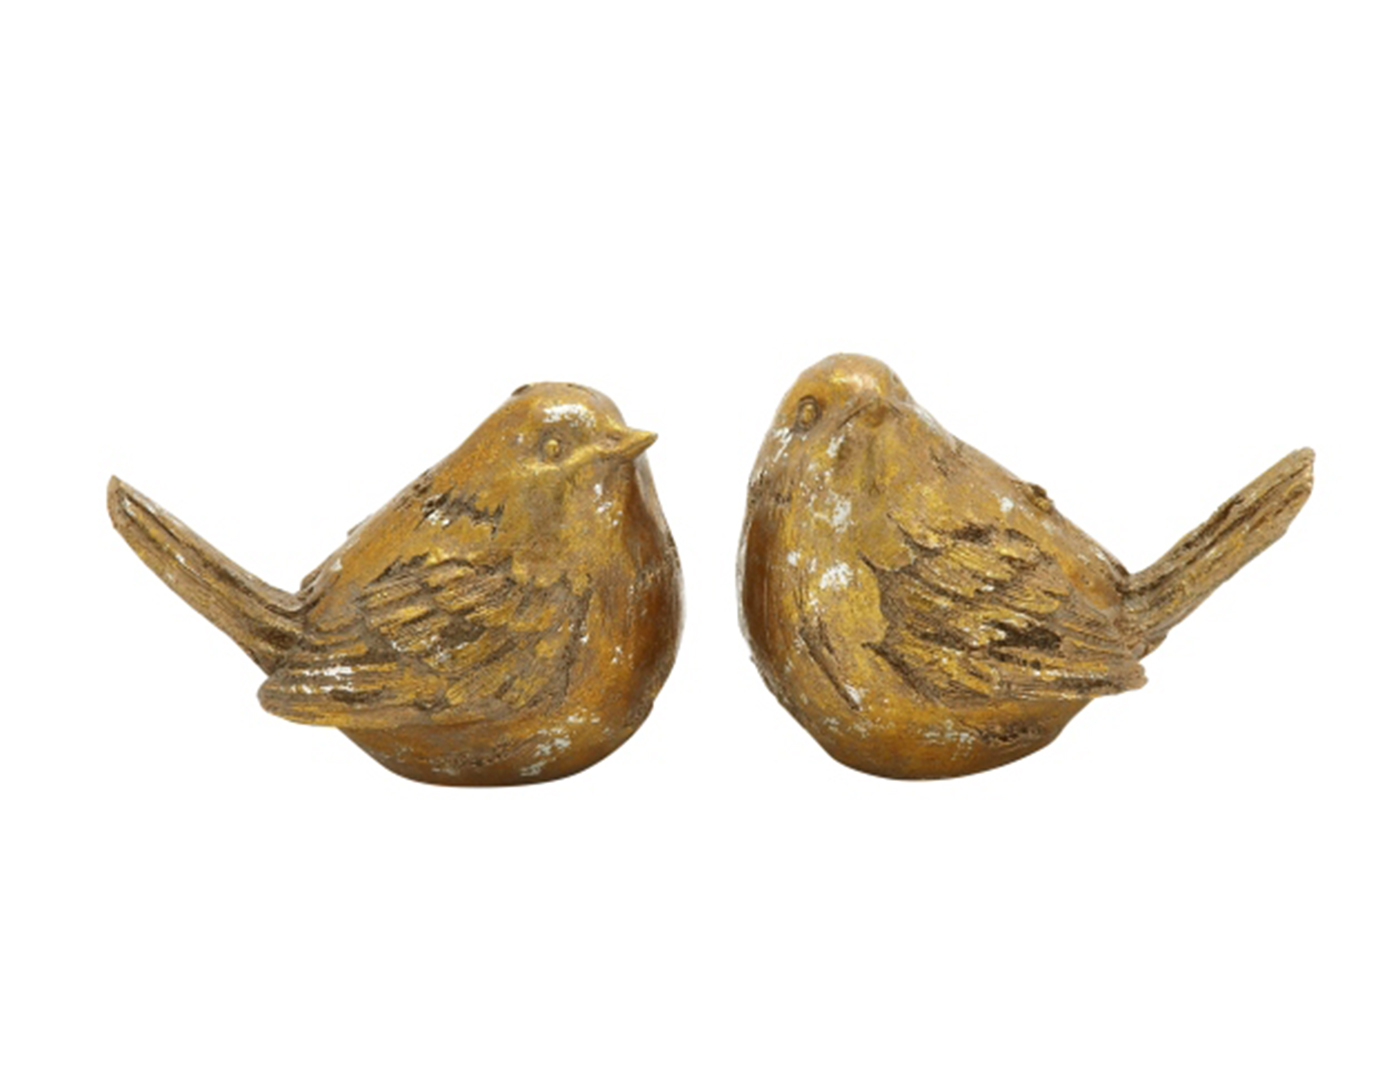 "Set of 2 Gold Bird Statues 8/6""W"